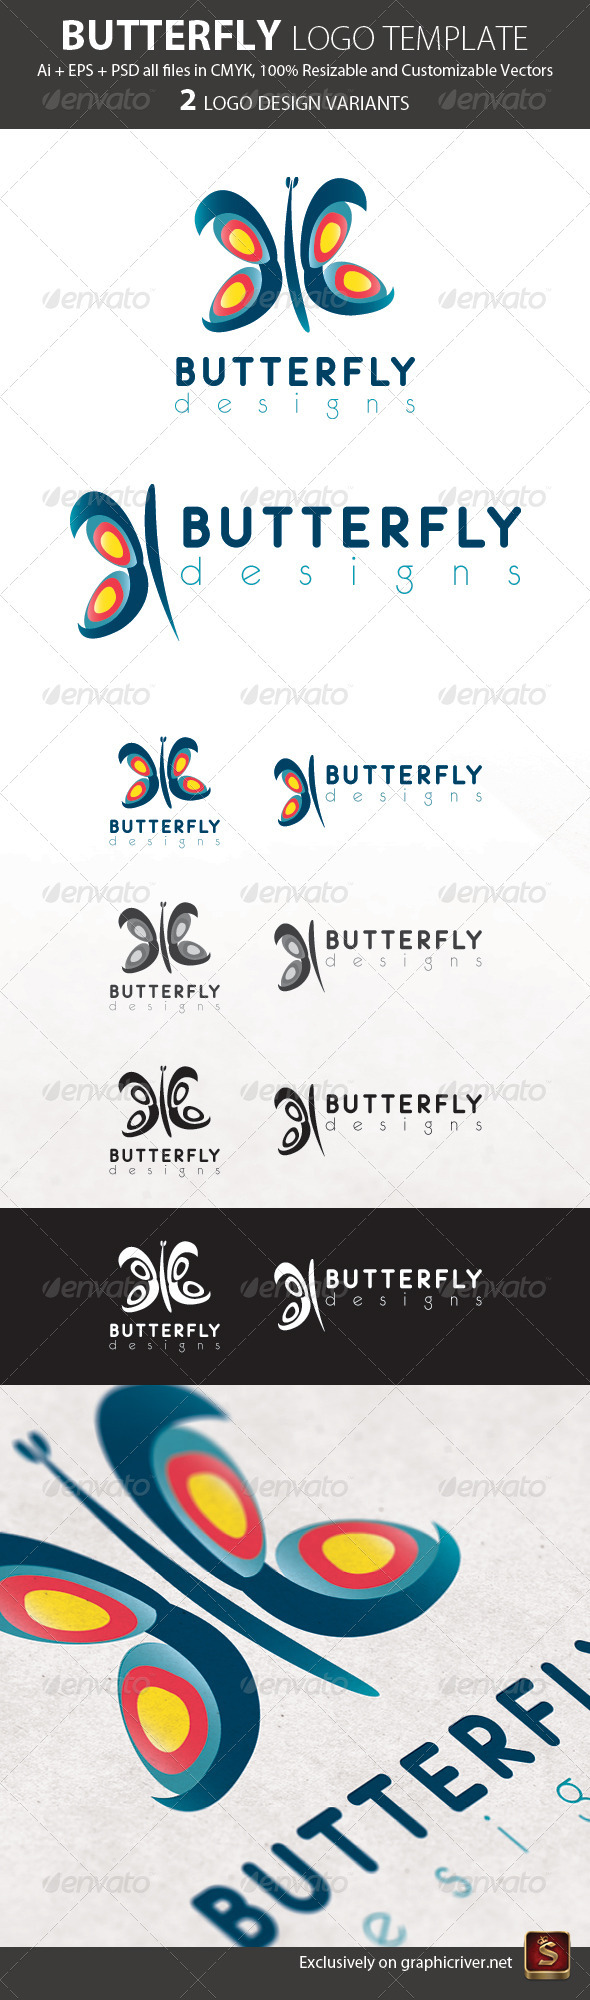 Butterfly Logo Template - Animals Logo Templates